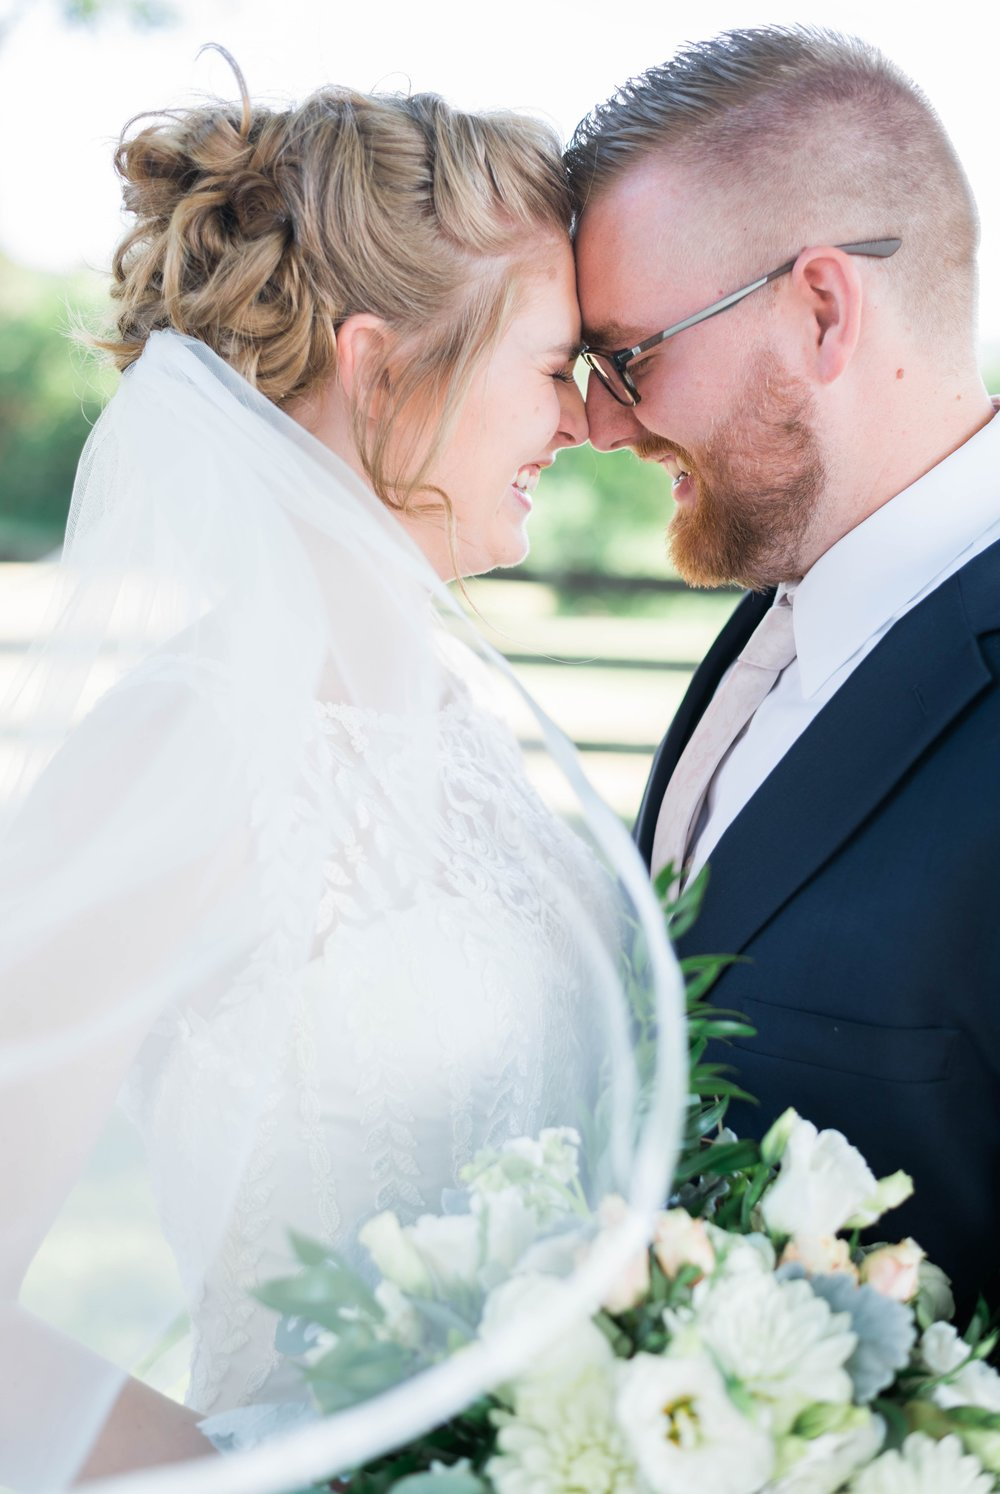 SorellaFarms_VirginiaWeddingPhotographer_BarnWedding_Lynchburgweddingphotographer_DanielleTyler 6.jpg